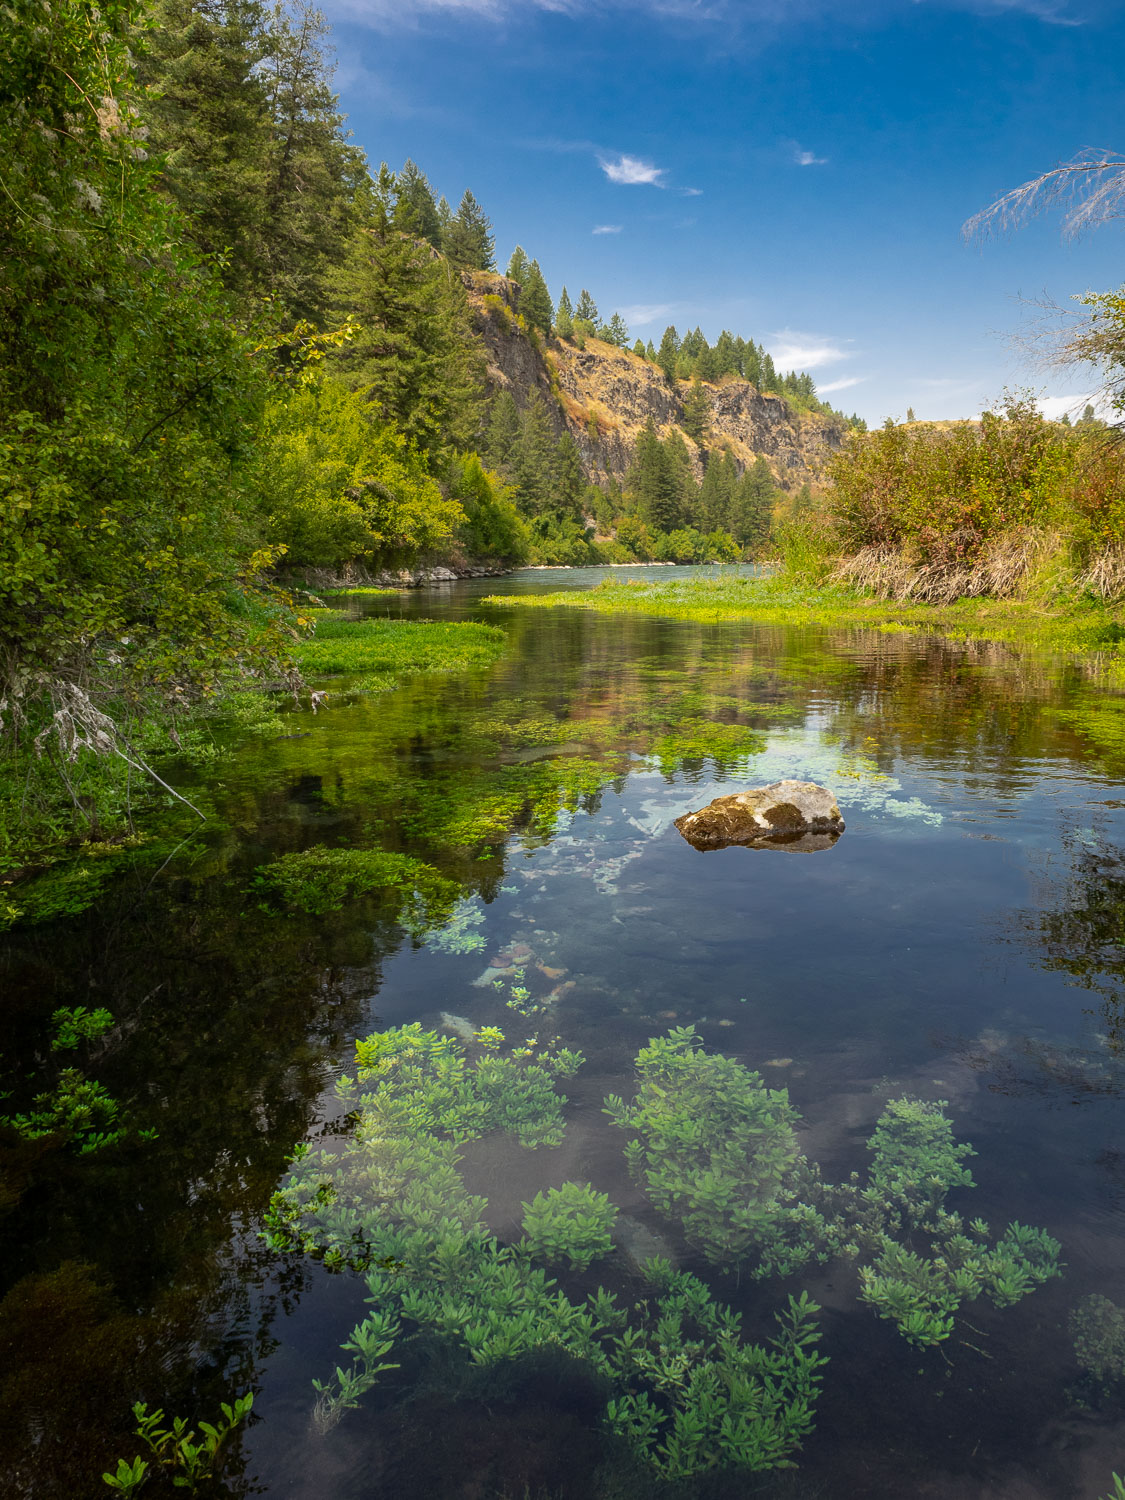 Watercress growing in Small Backwater of Snake River, Idaho. It